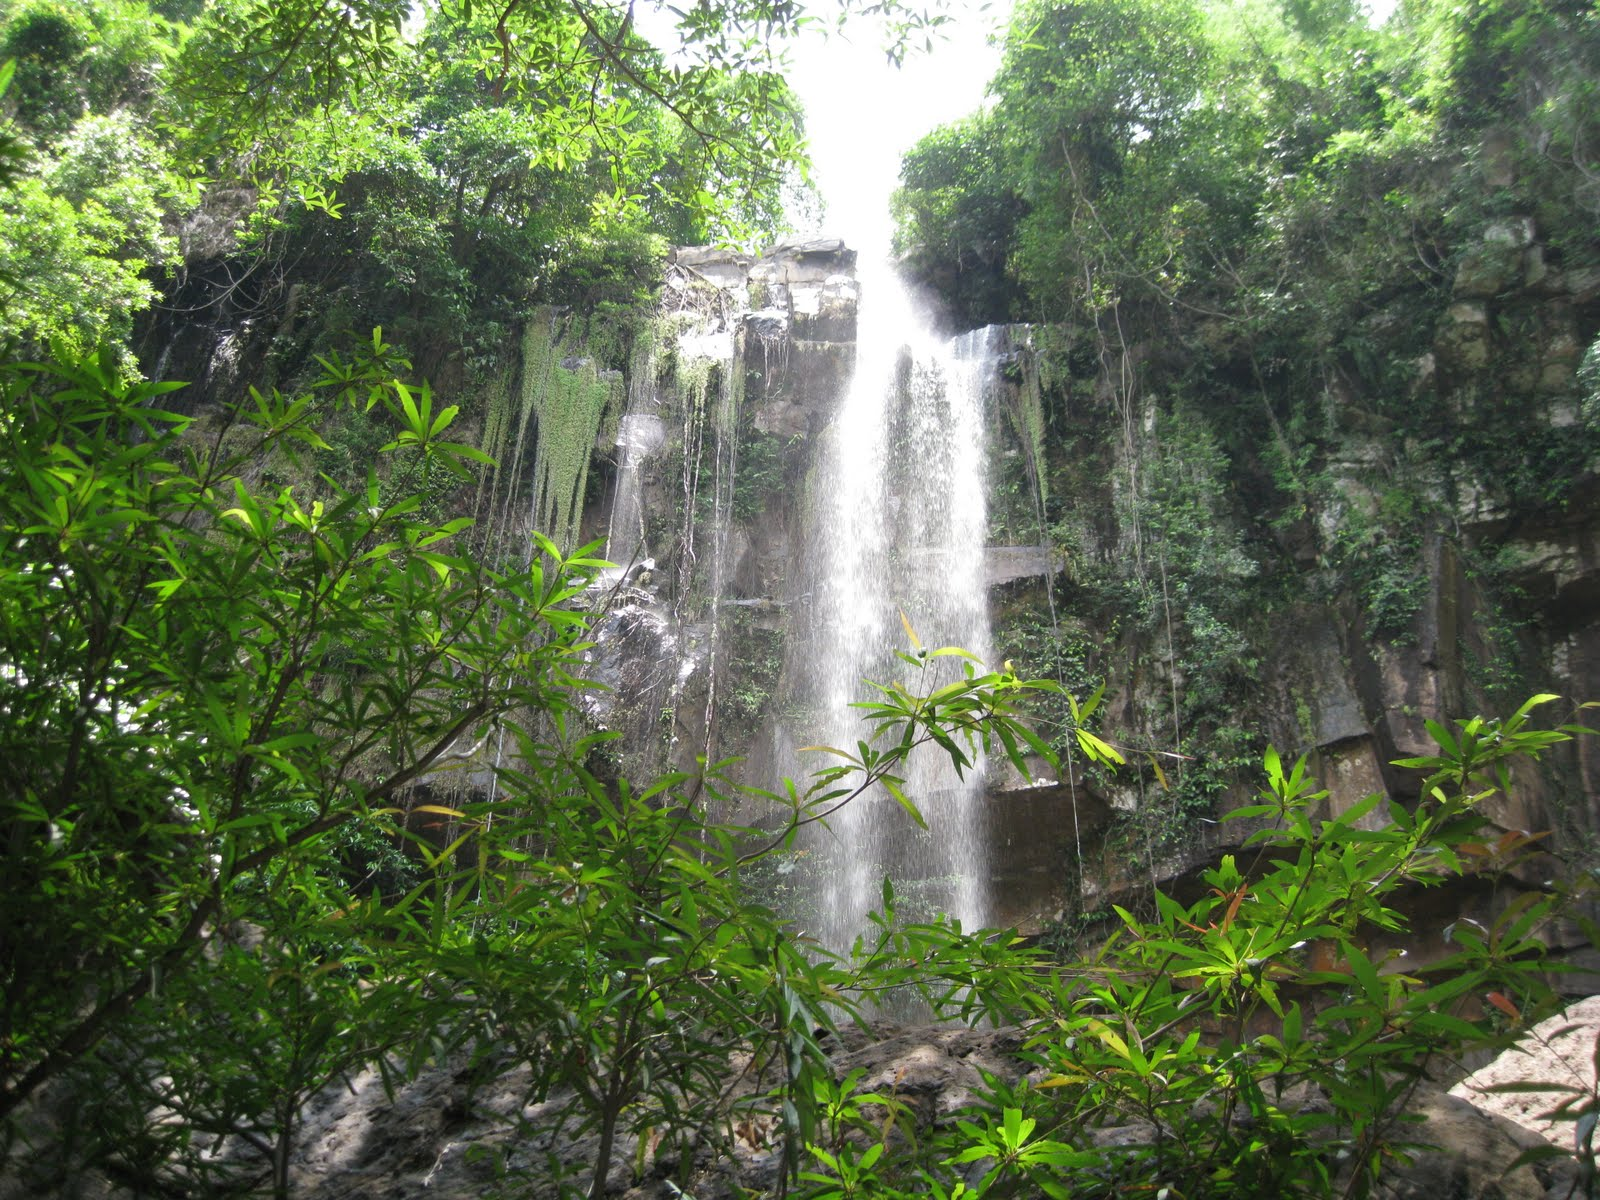 Excursion in Chambok ecotourism site and waterfall